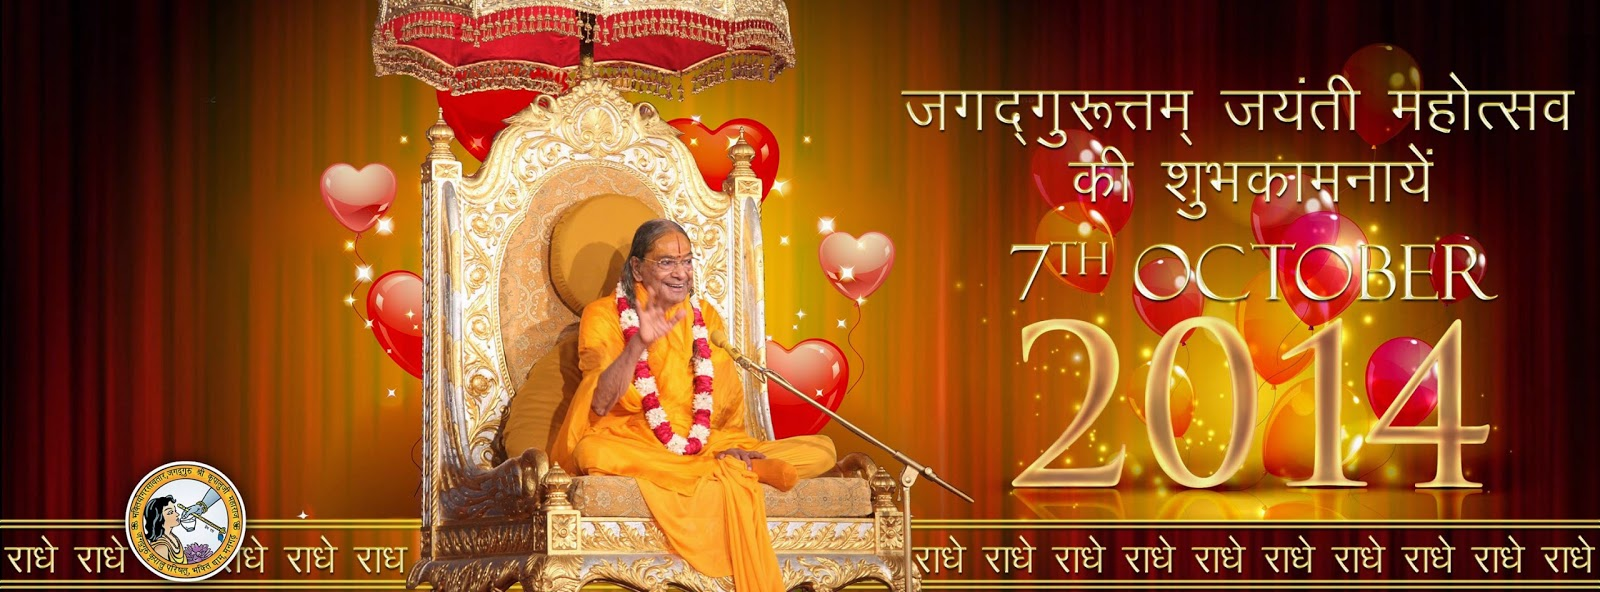 Message for Sharad Poornima and Jagadgurutam Jayanti 2014, birthday of Kripalu Ji Maharaj